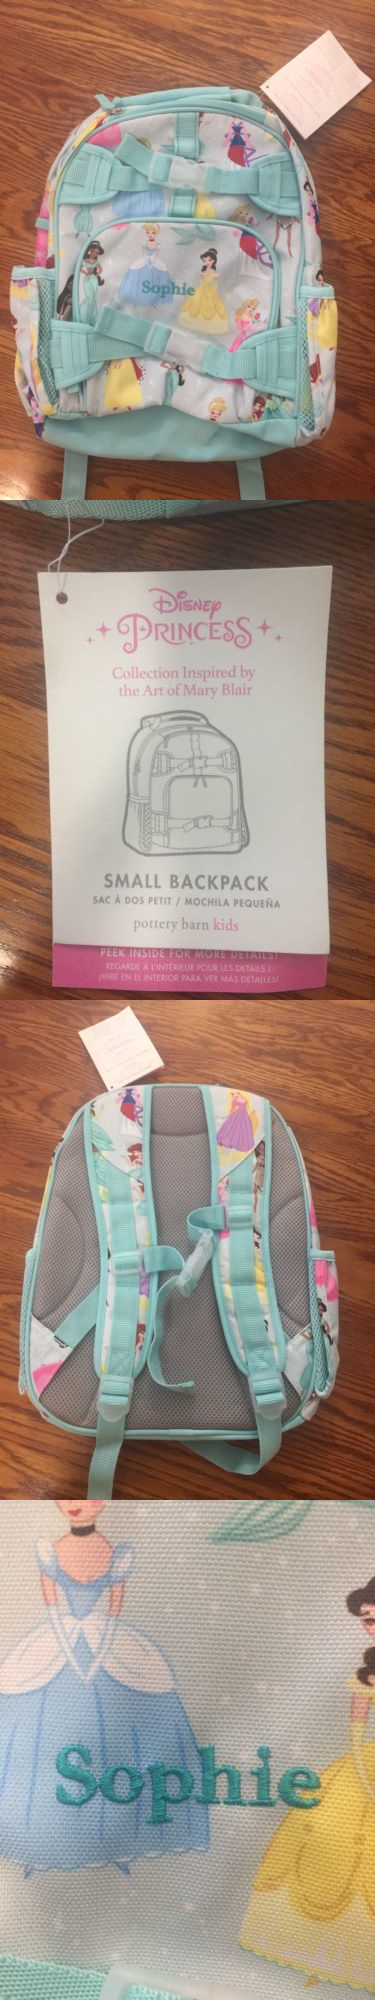 Backpacks 57917 Pottery Barn Kids Small Disney Princess Aqua Sophie Backpack New With Tags Nwt